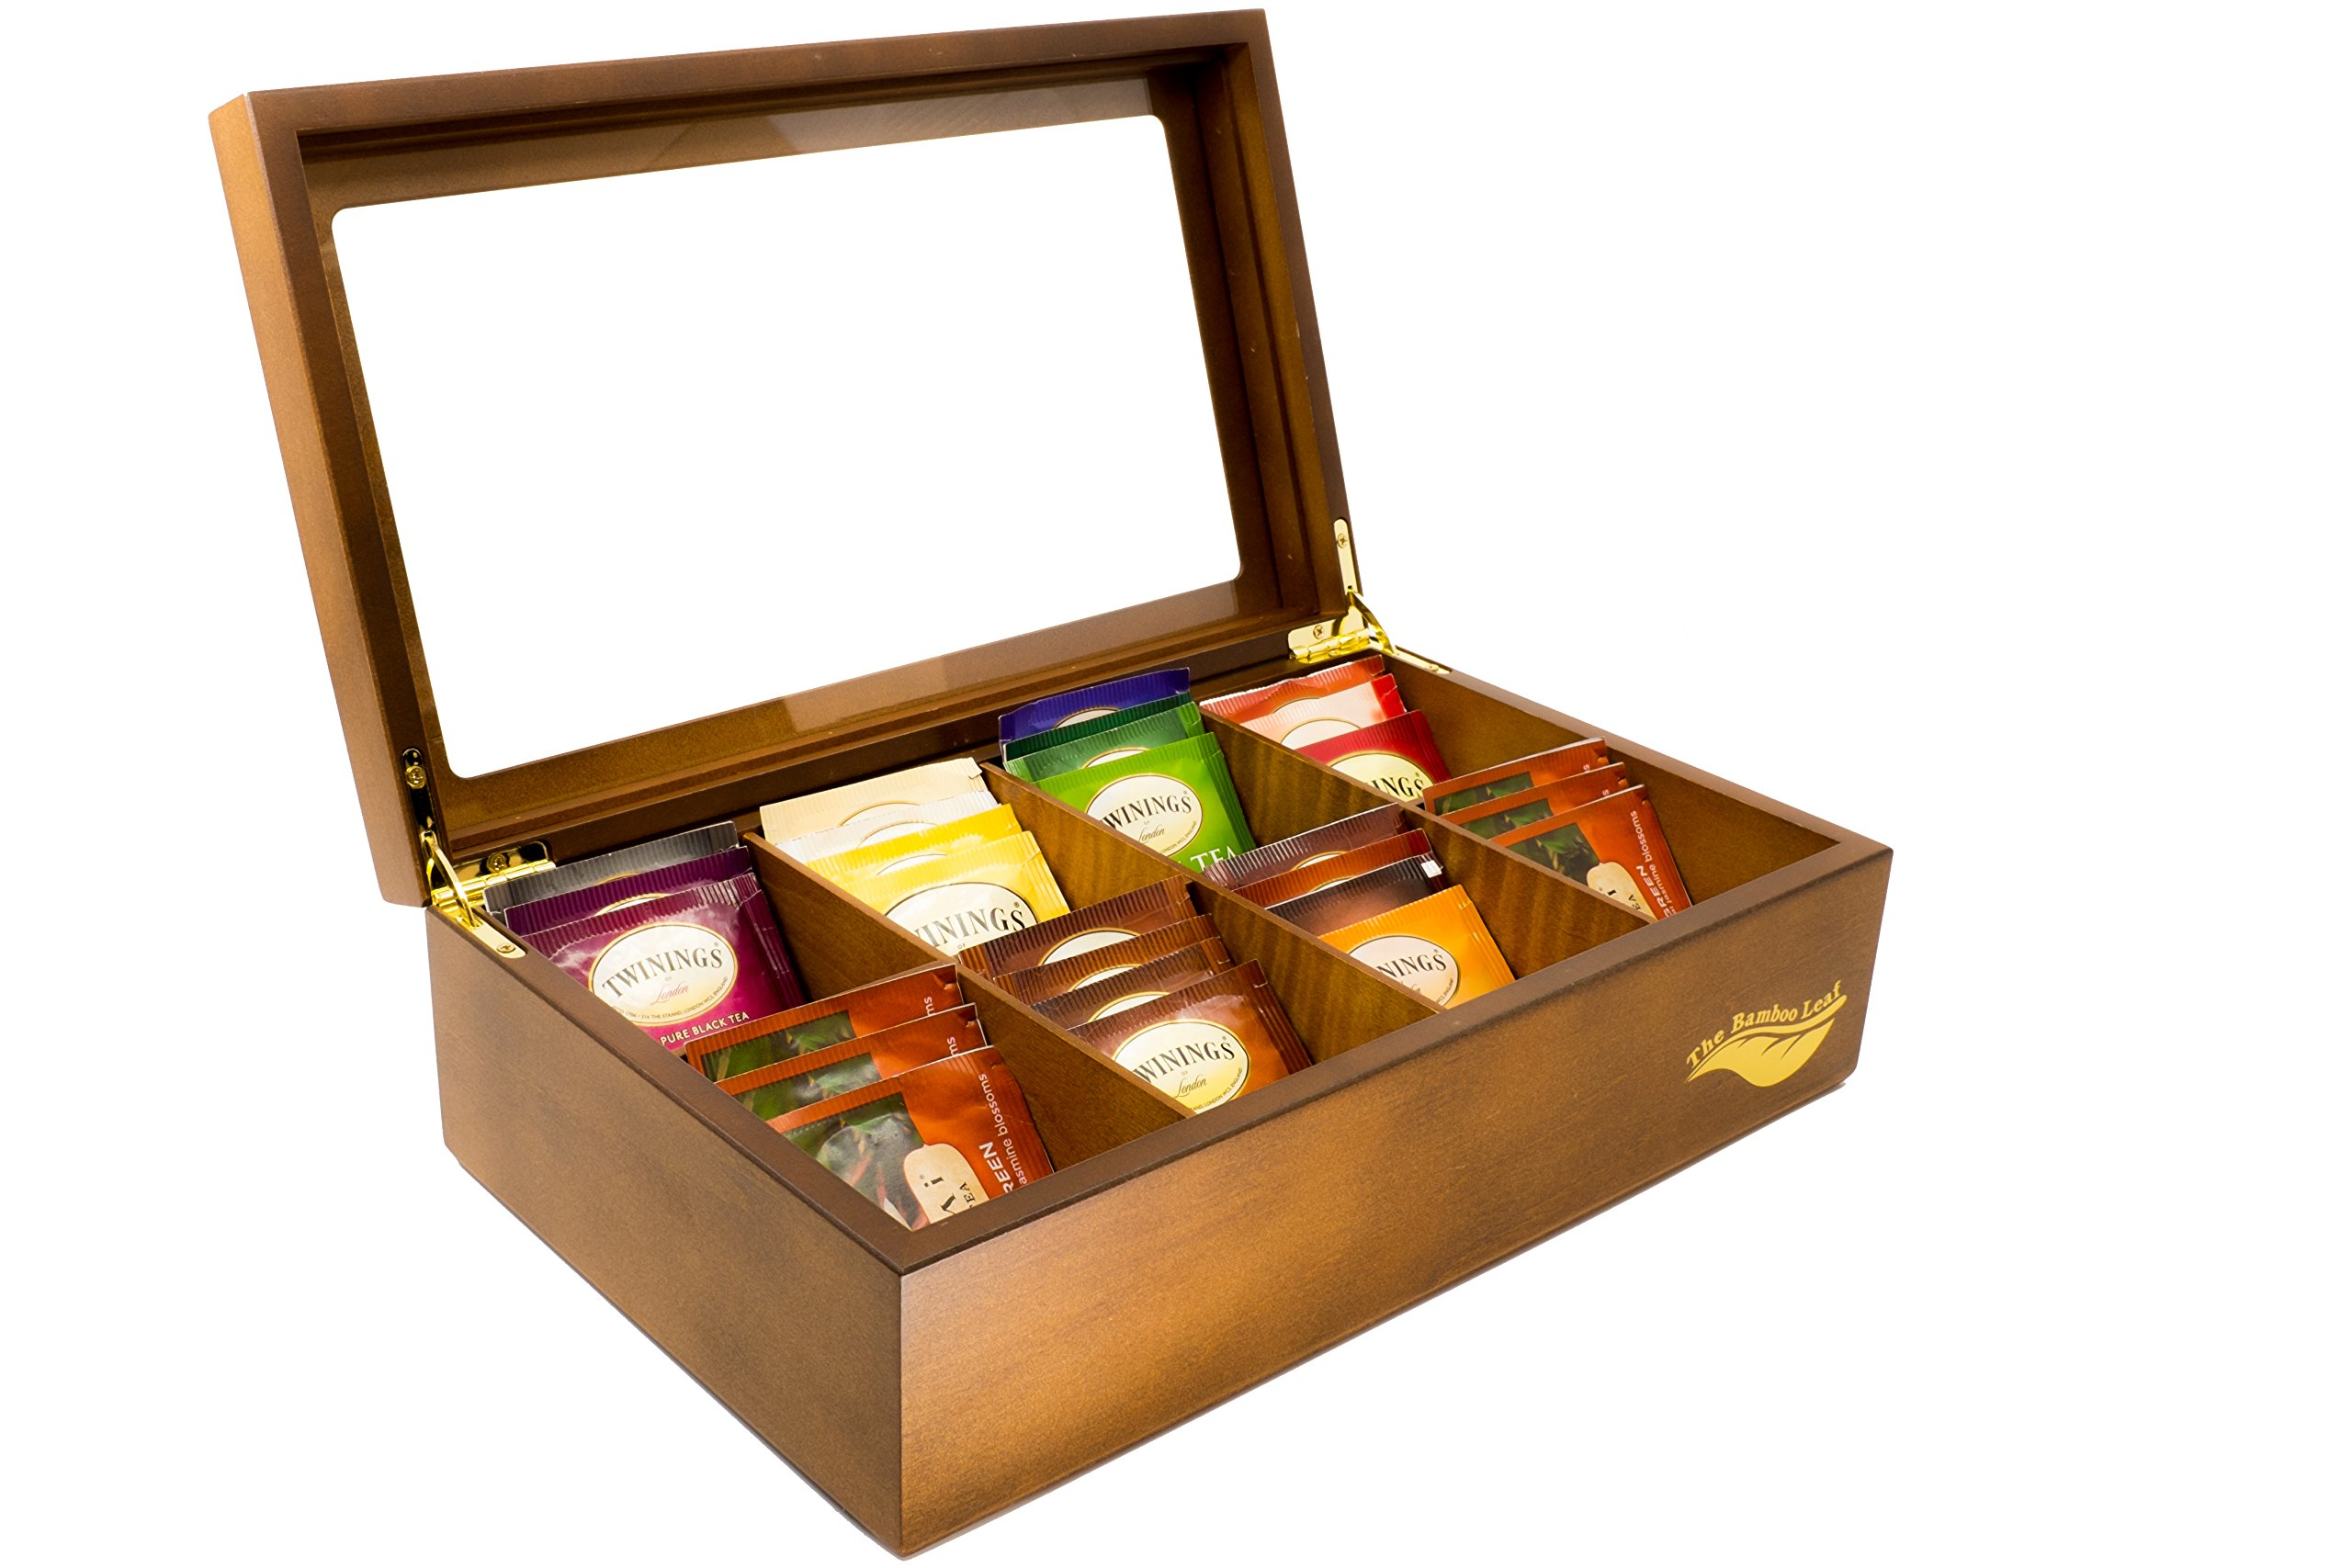 The Bamboo Leaf Wooden Tea Storage Chest Box with 8 Compartments and Glass Window (Walnut)